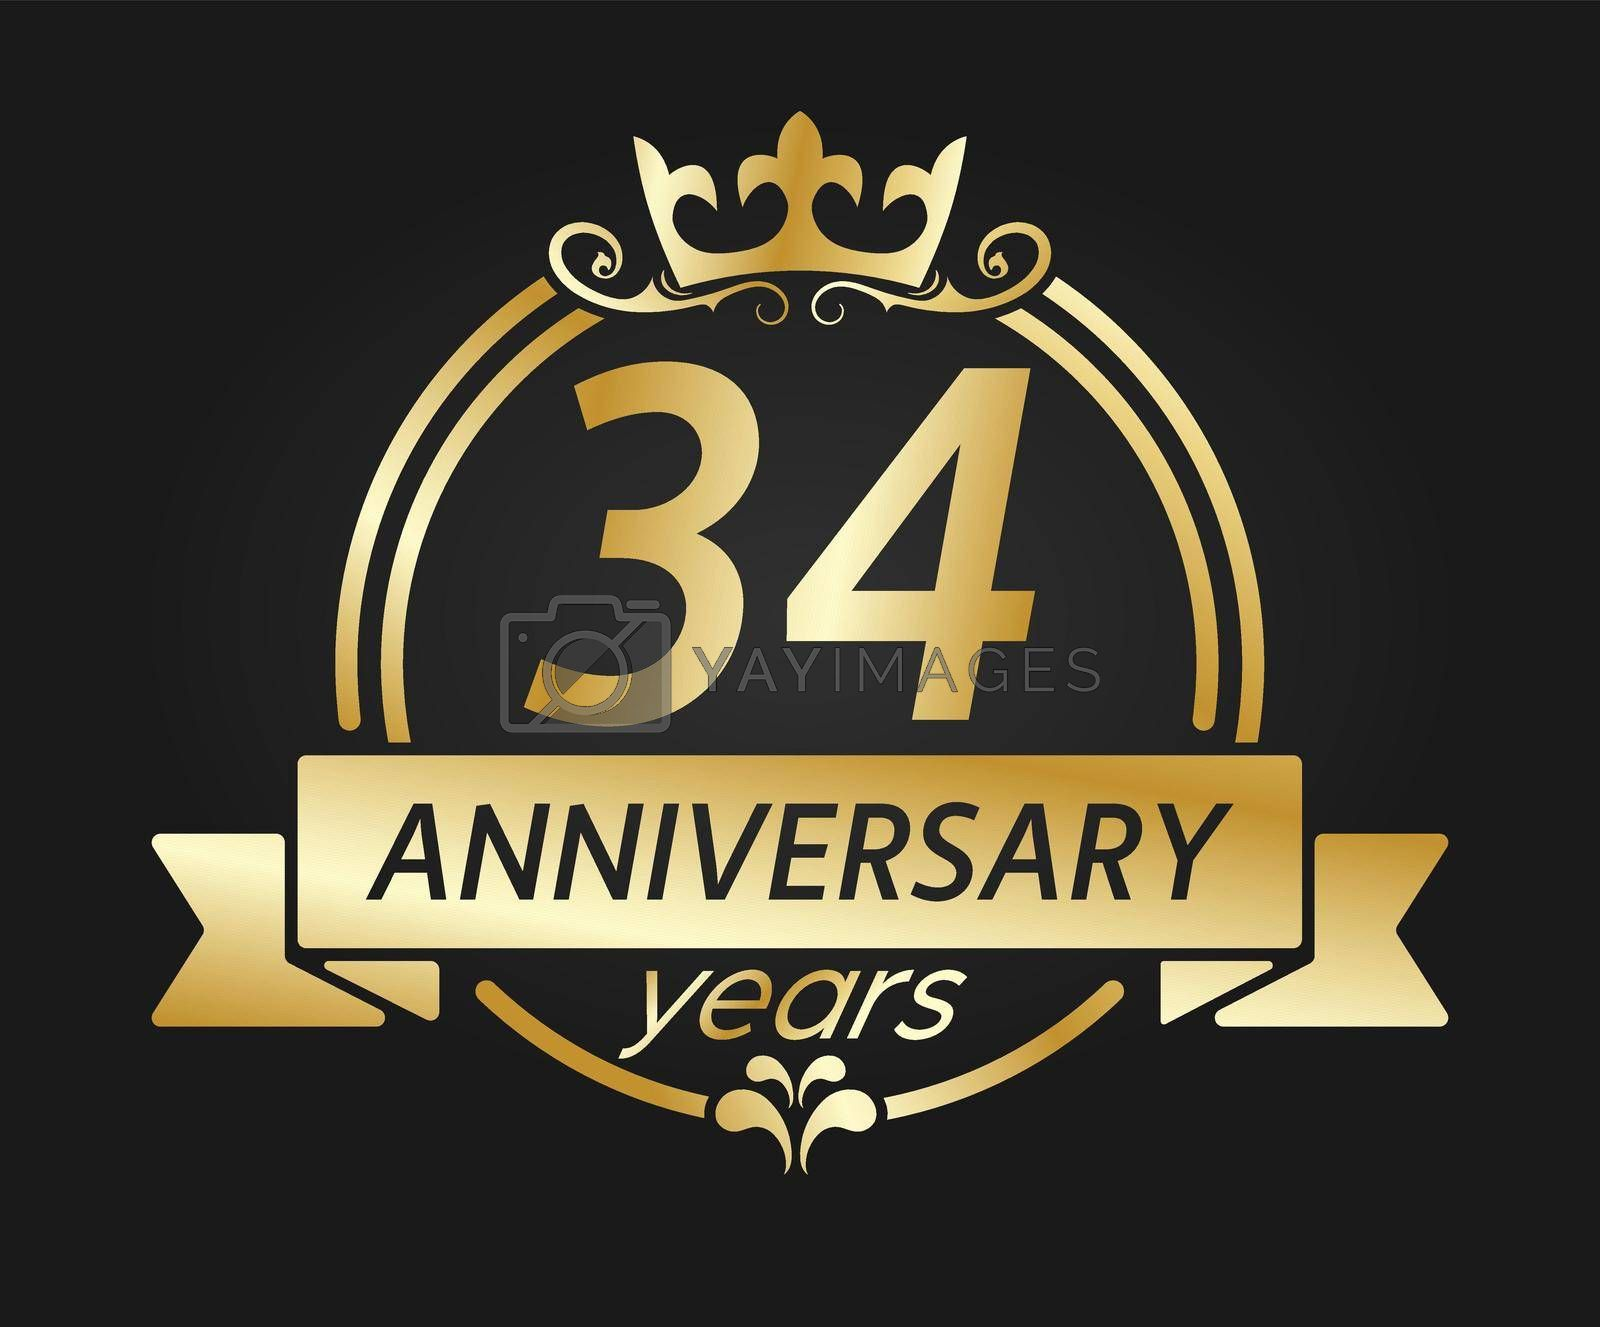 Royalty free image of 34 year anniversary. Gold round frame with crown and ribbon. Vector illustration for birthday, wedding or anniversary greetings, for creative design by Grommik